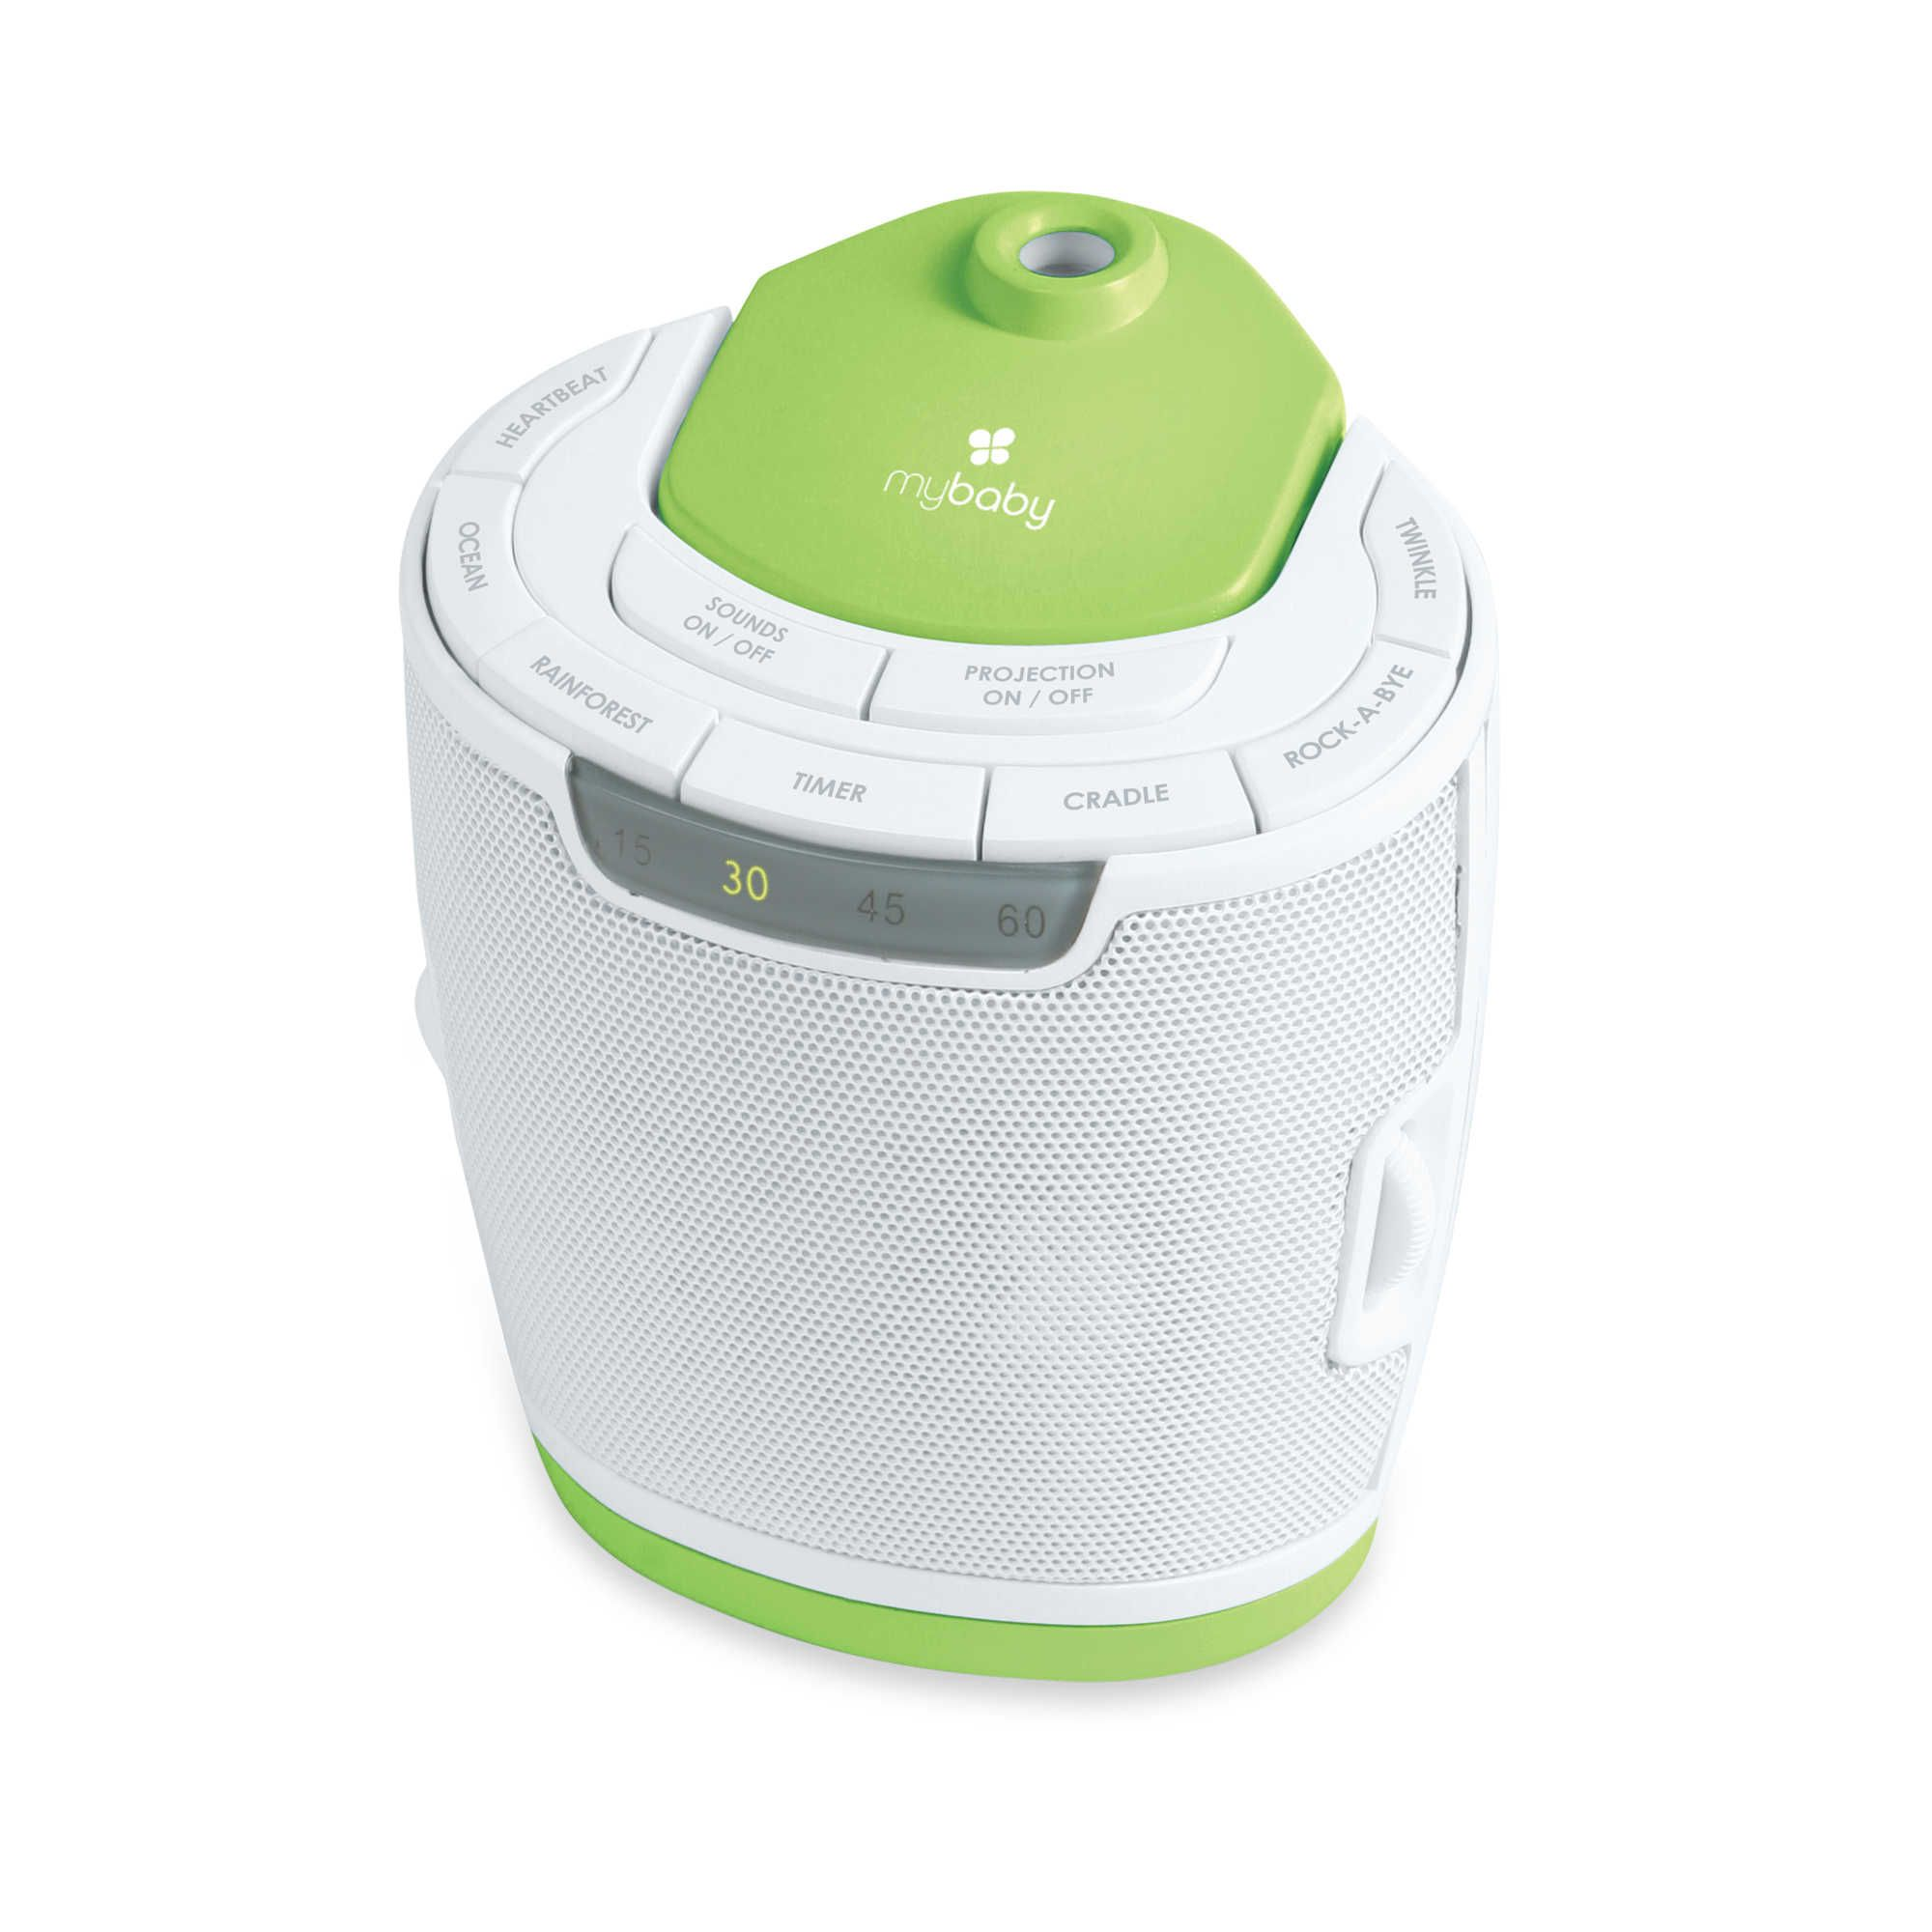 HoMedics® MyBaby Portable SoundSpa in White | New baby ...